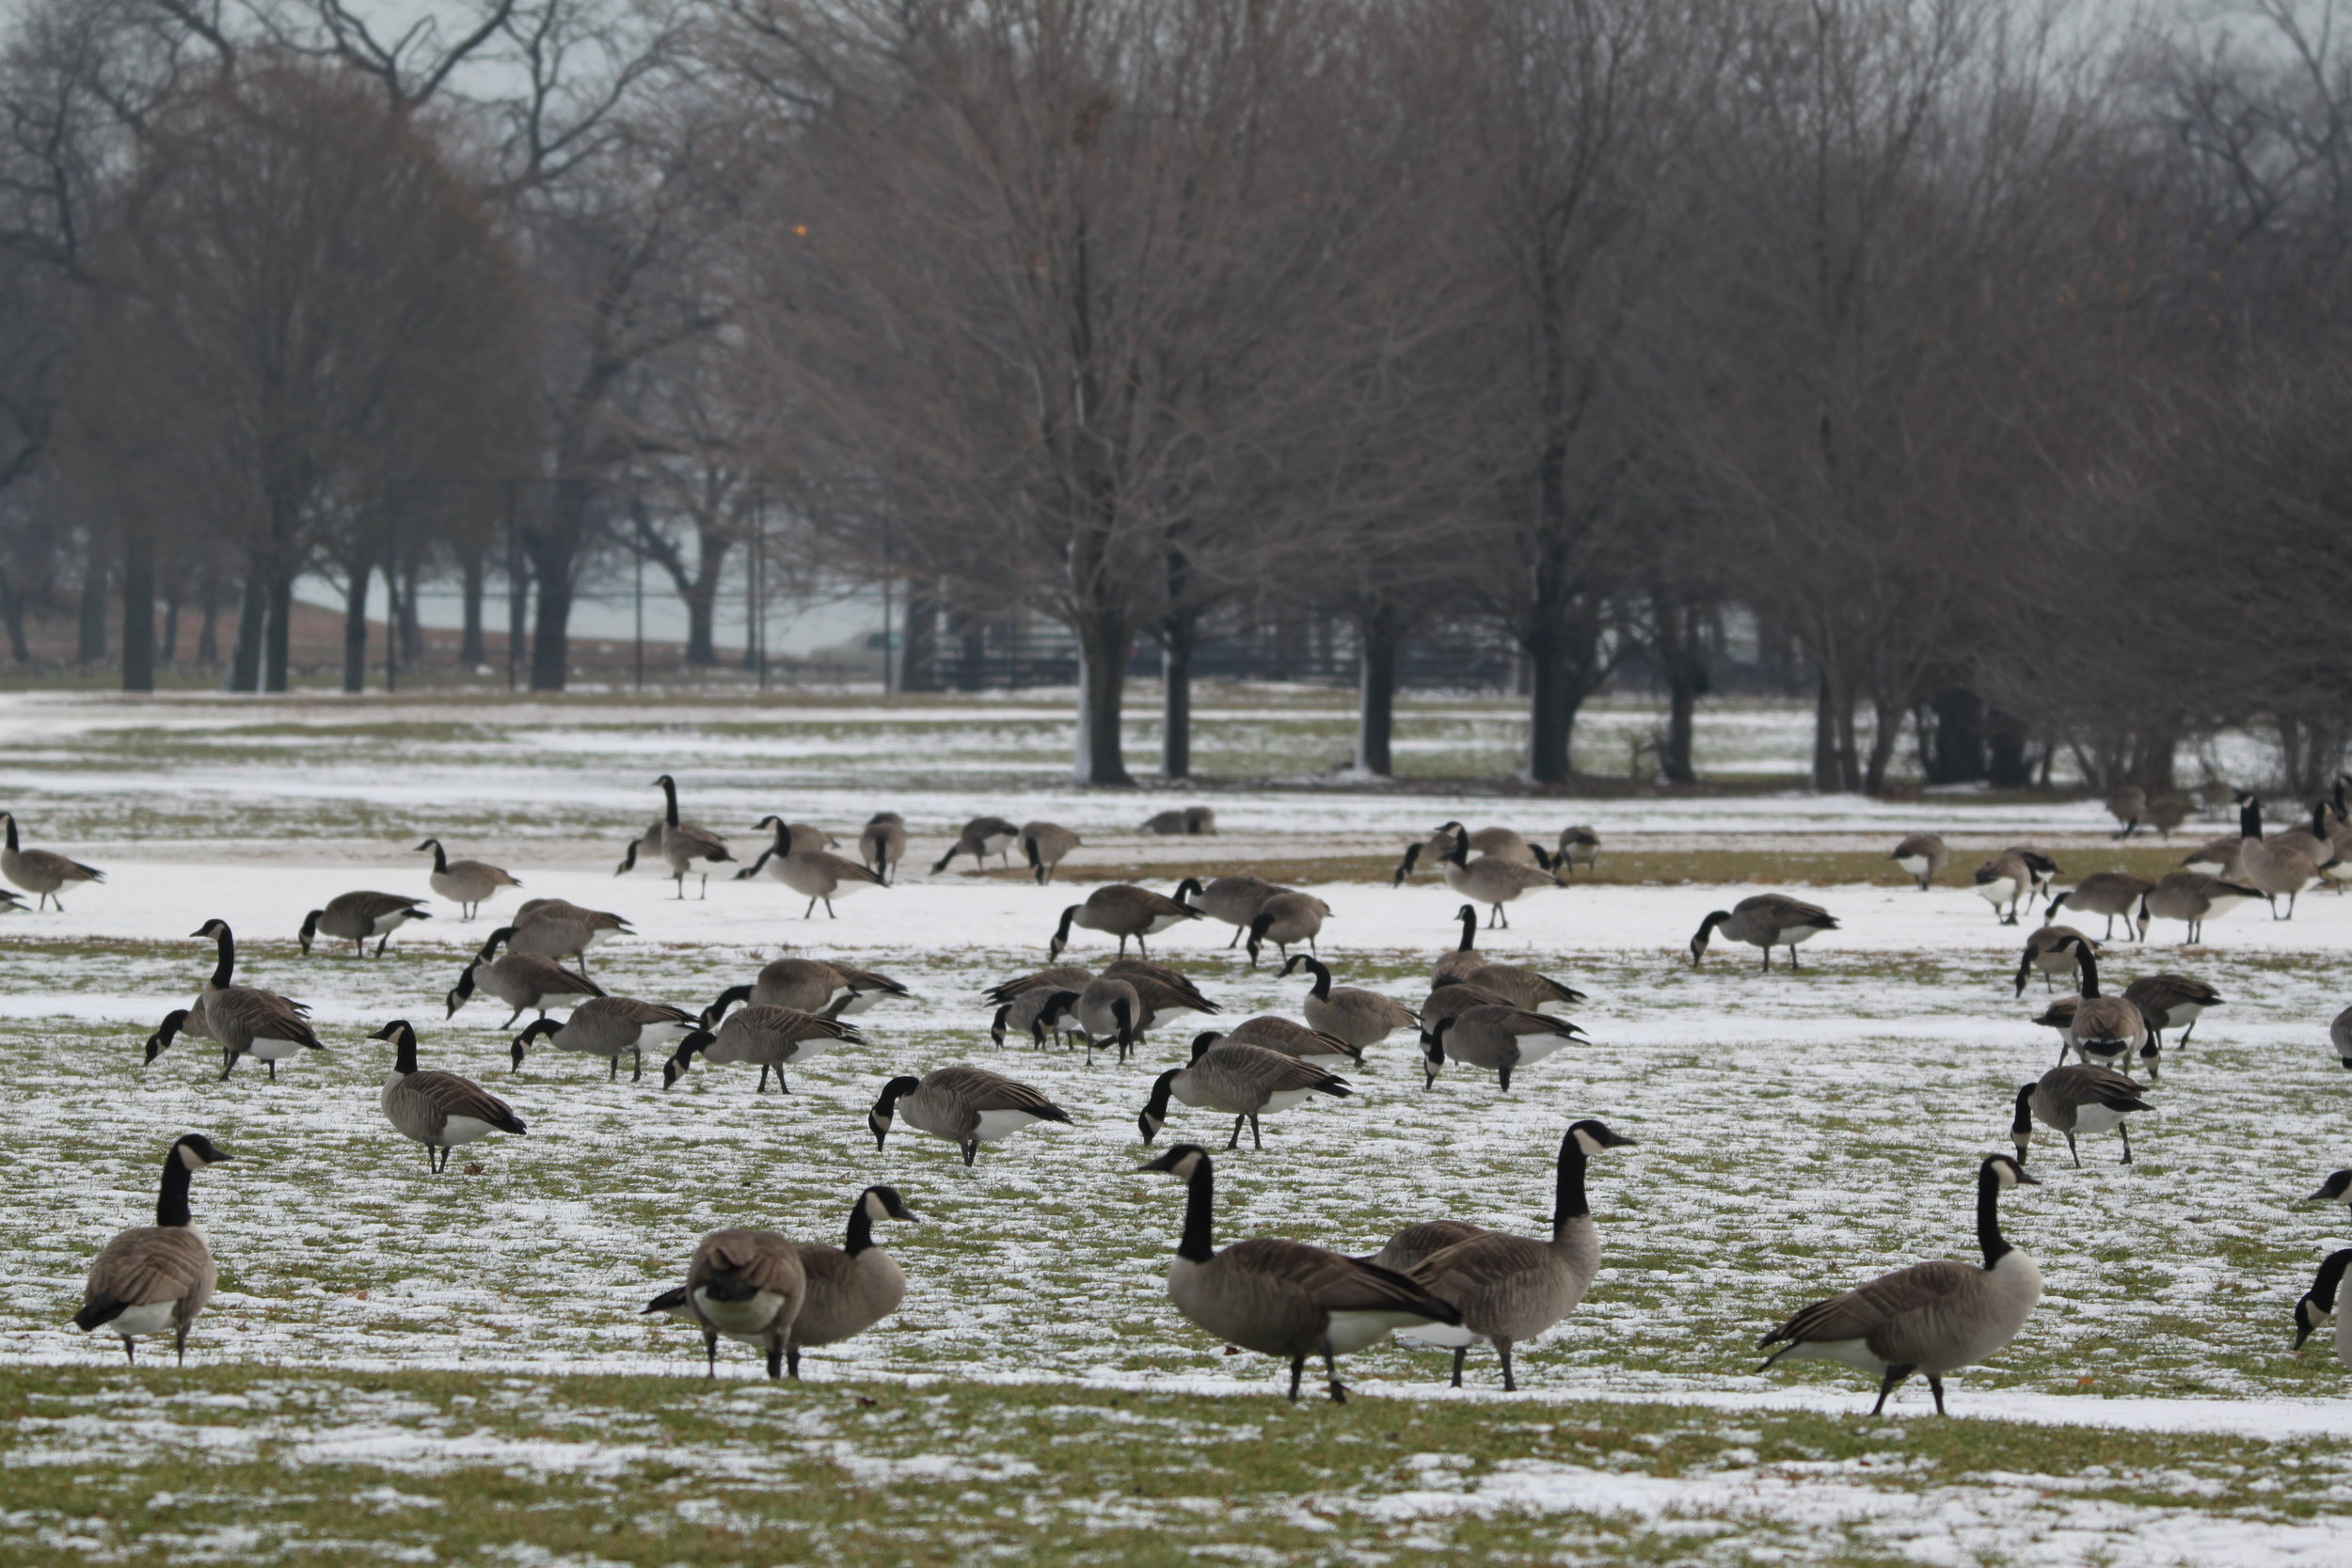 One of these birds is not like the others. Finding a Cackling Goose amid hundreds of Canada Geese poses a challenge.